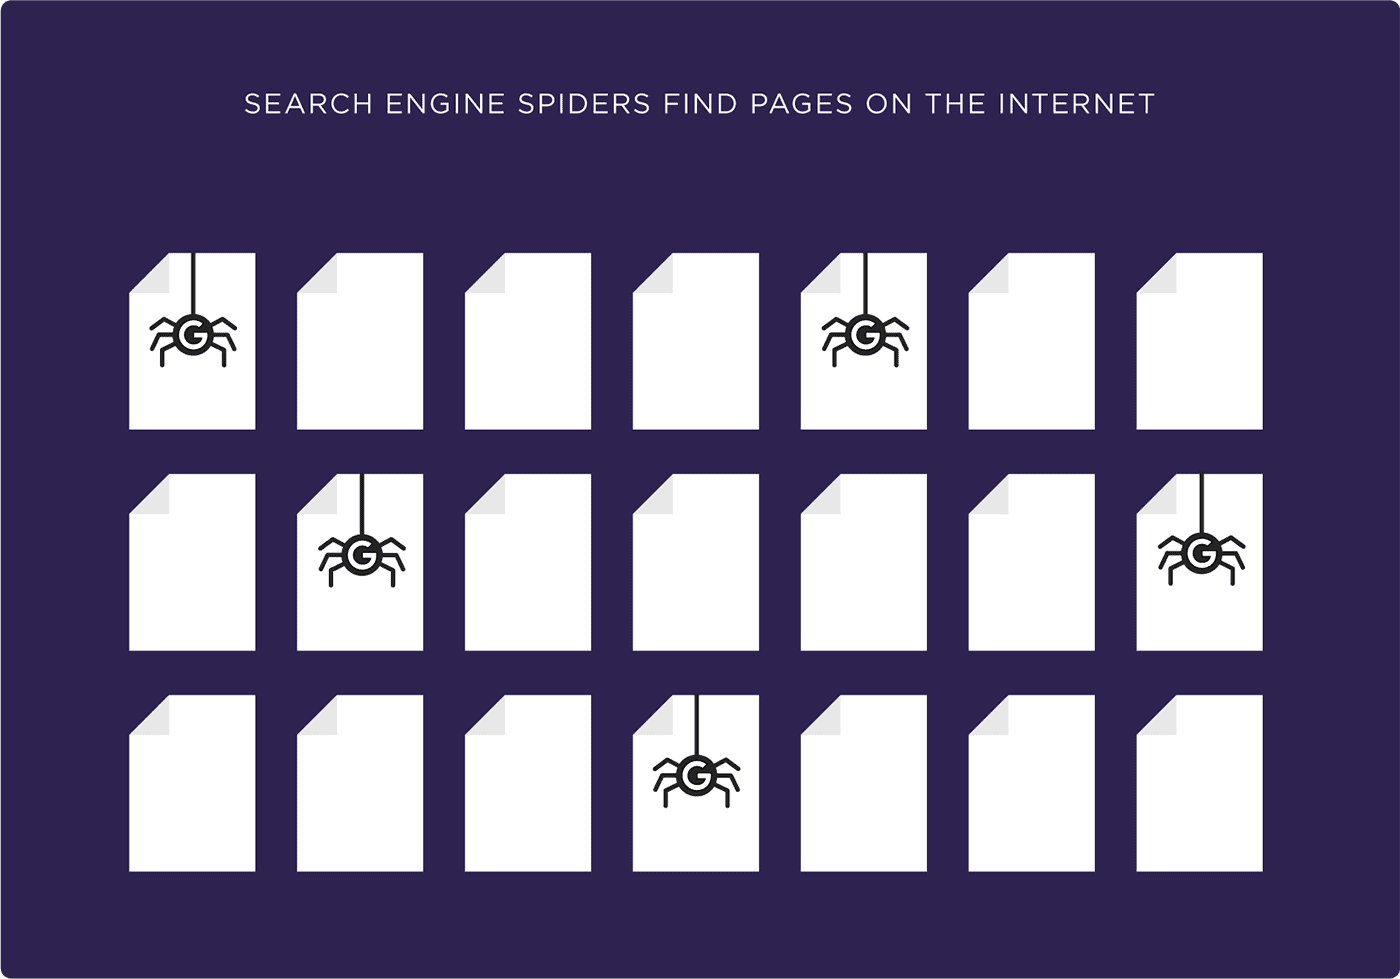 Search engine spiders find pages on the internet